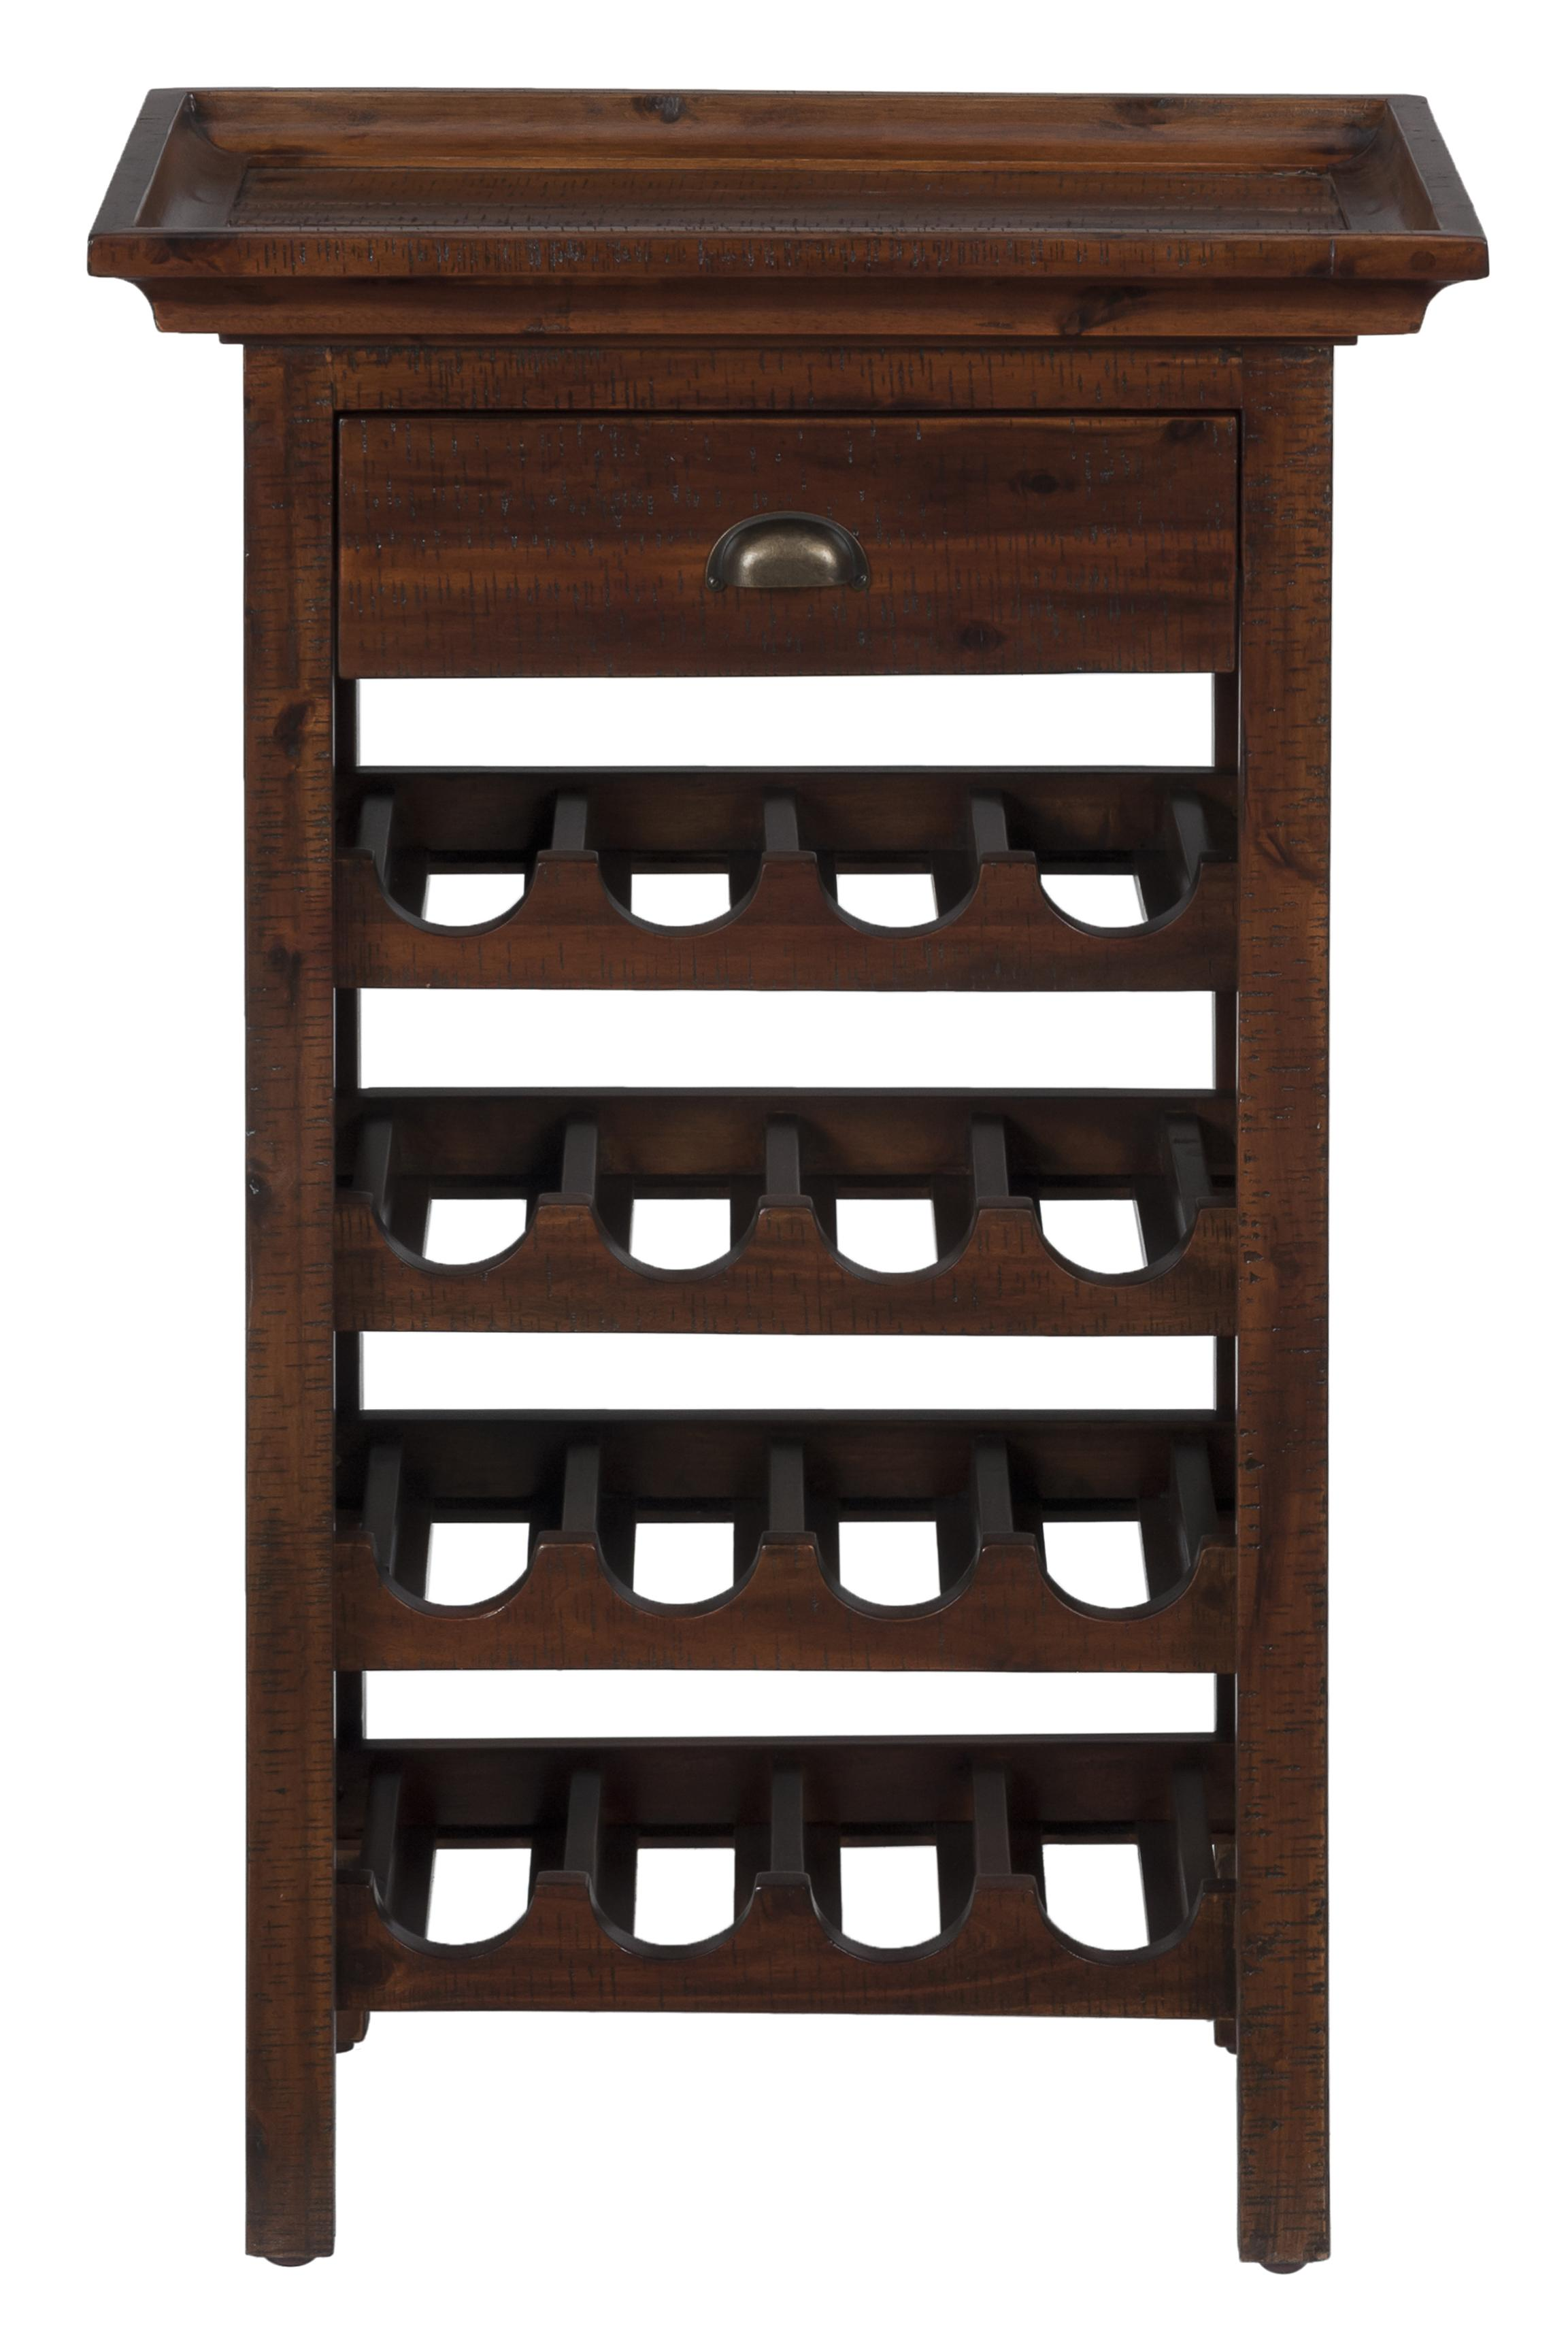 Jofran Urban Lodge Brown Wine Rack - Item Number: 730-12